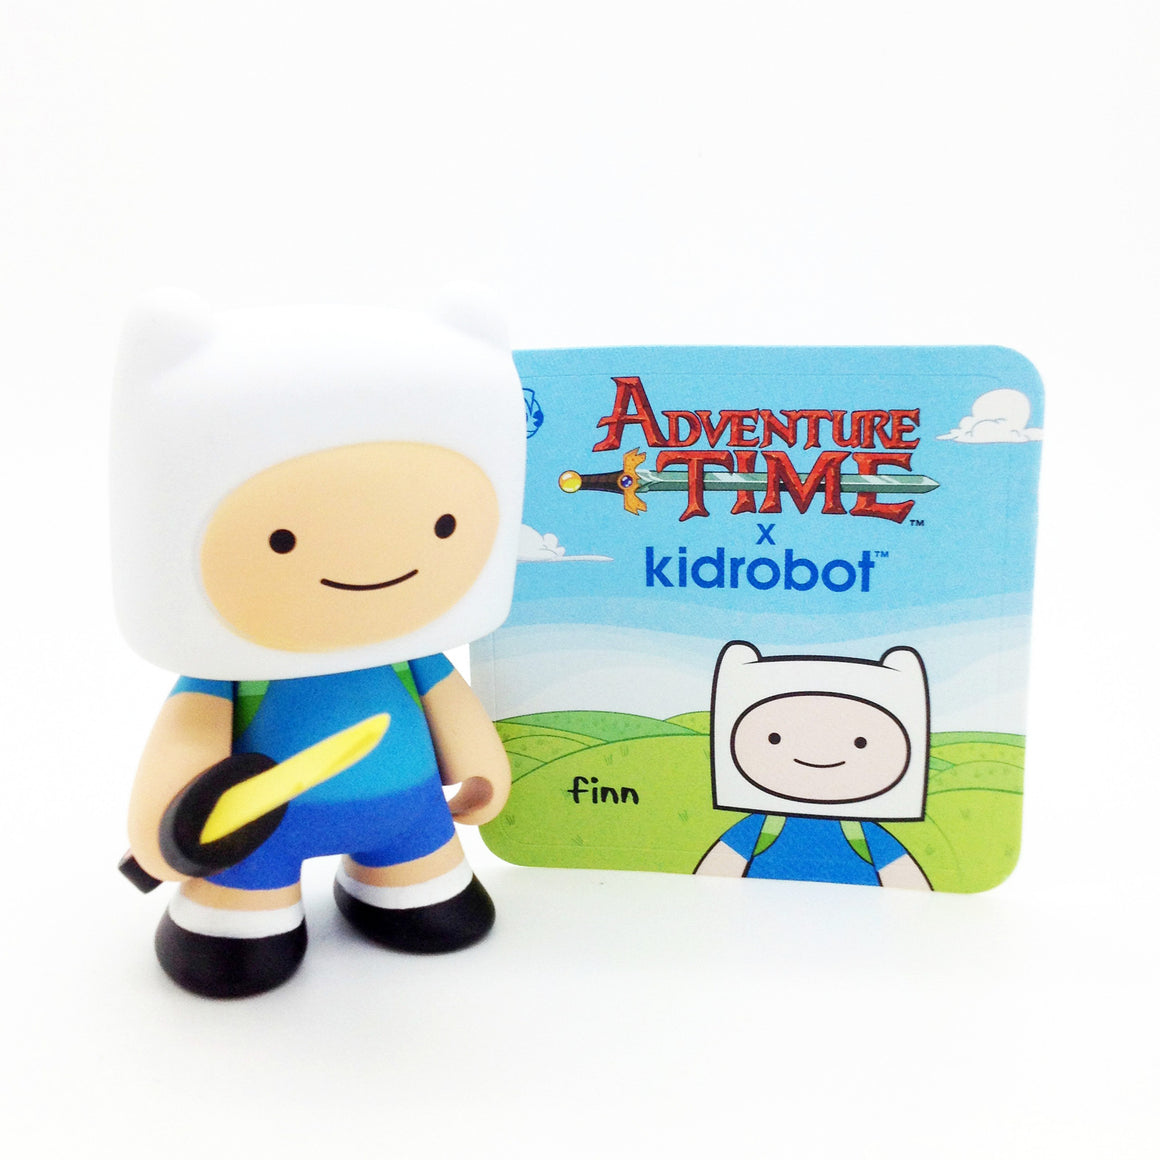 Adventure Time x Kidrobot Series - Finn - Mindzai  - 1